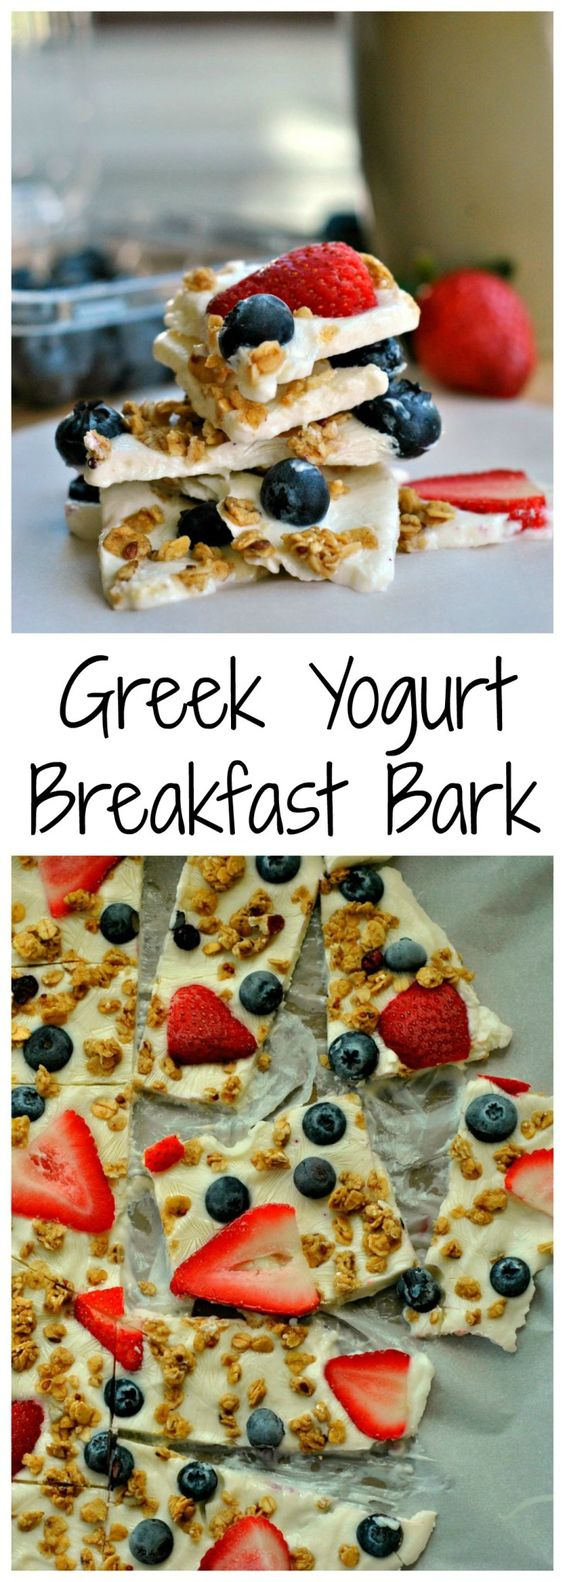 GREEK YOGURT BREAKFAST BARK